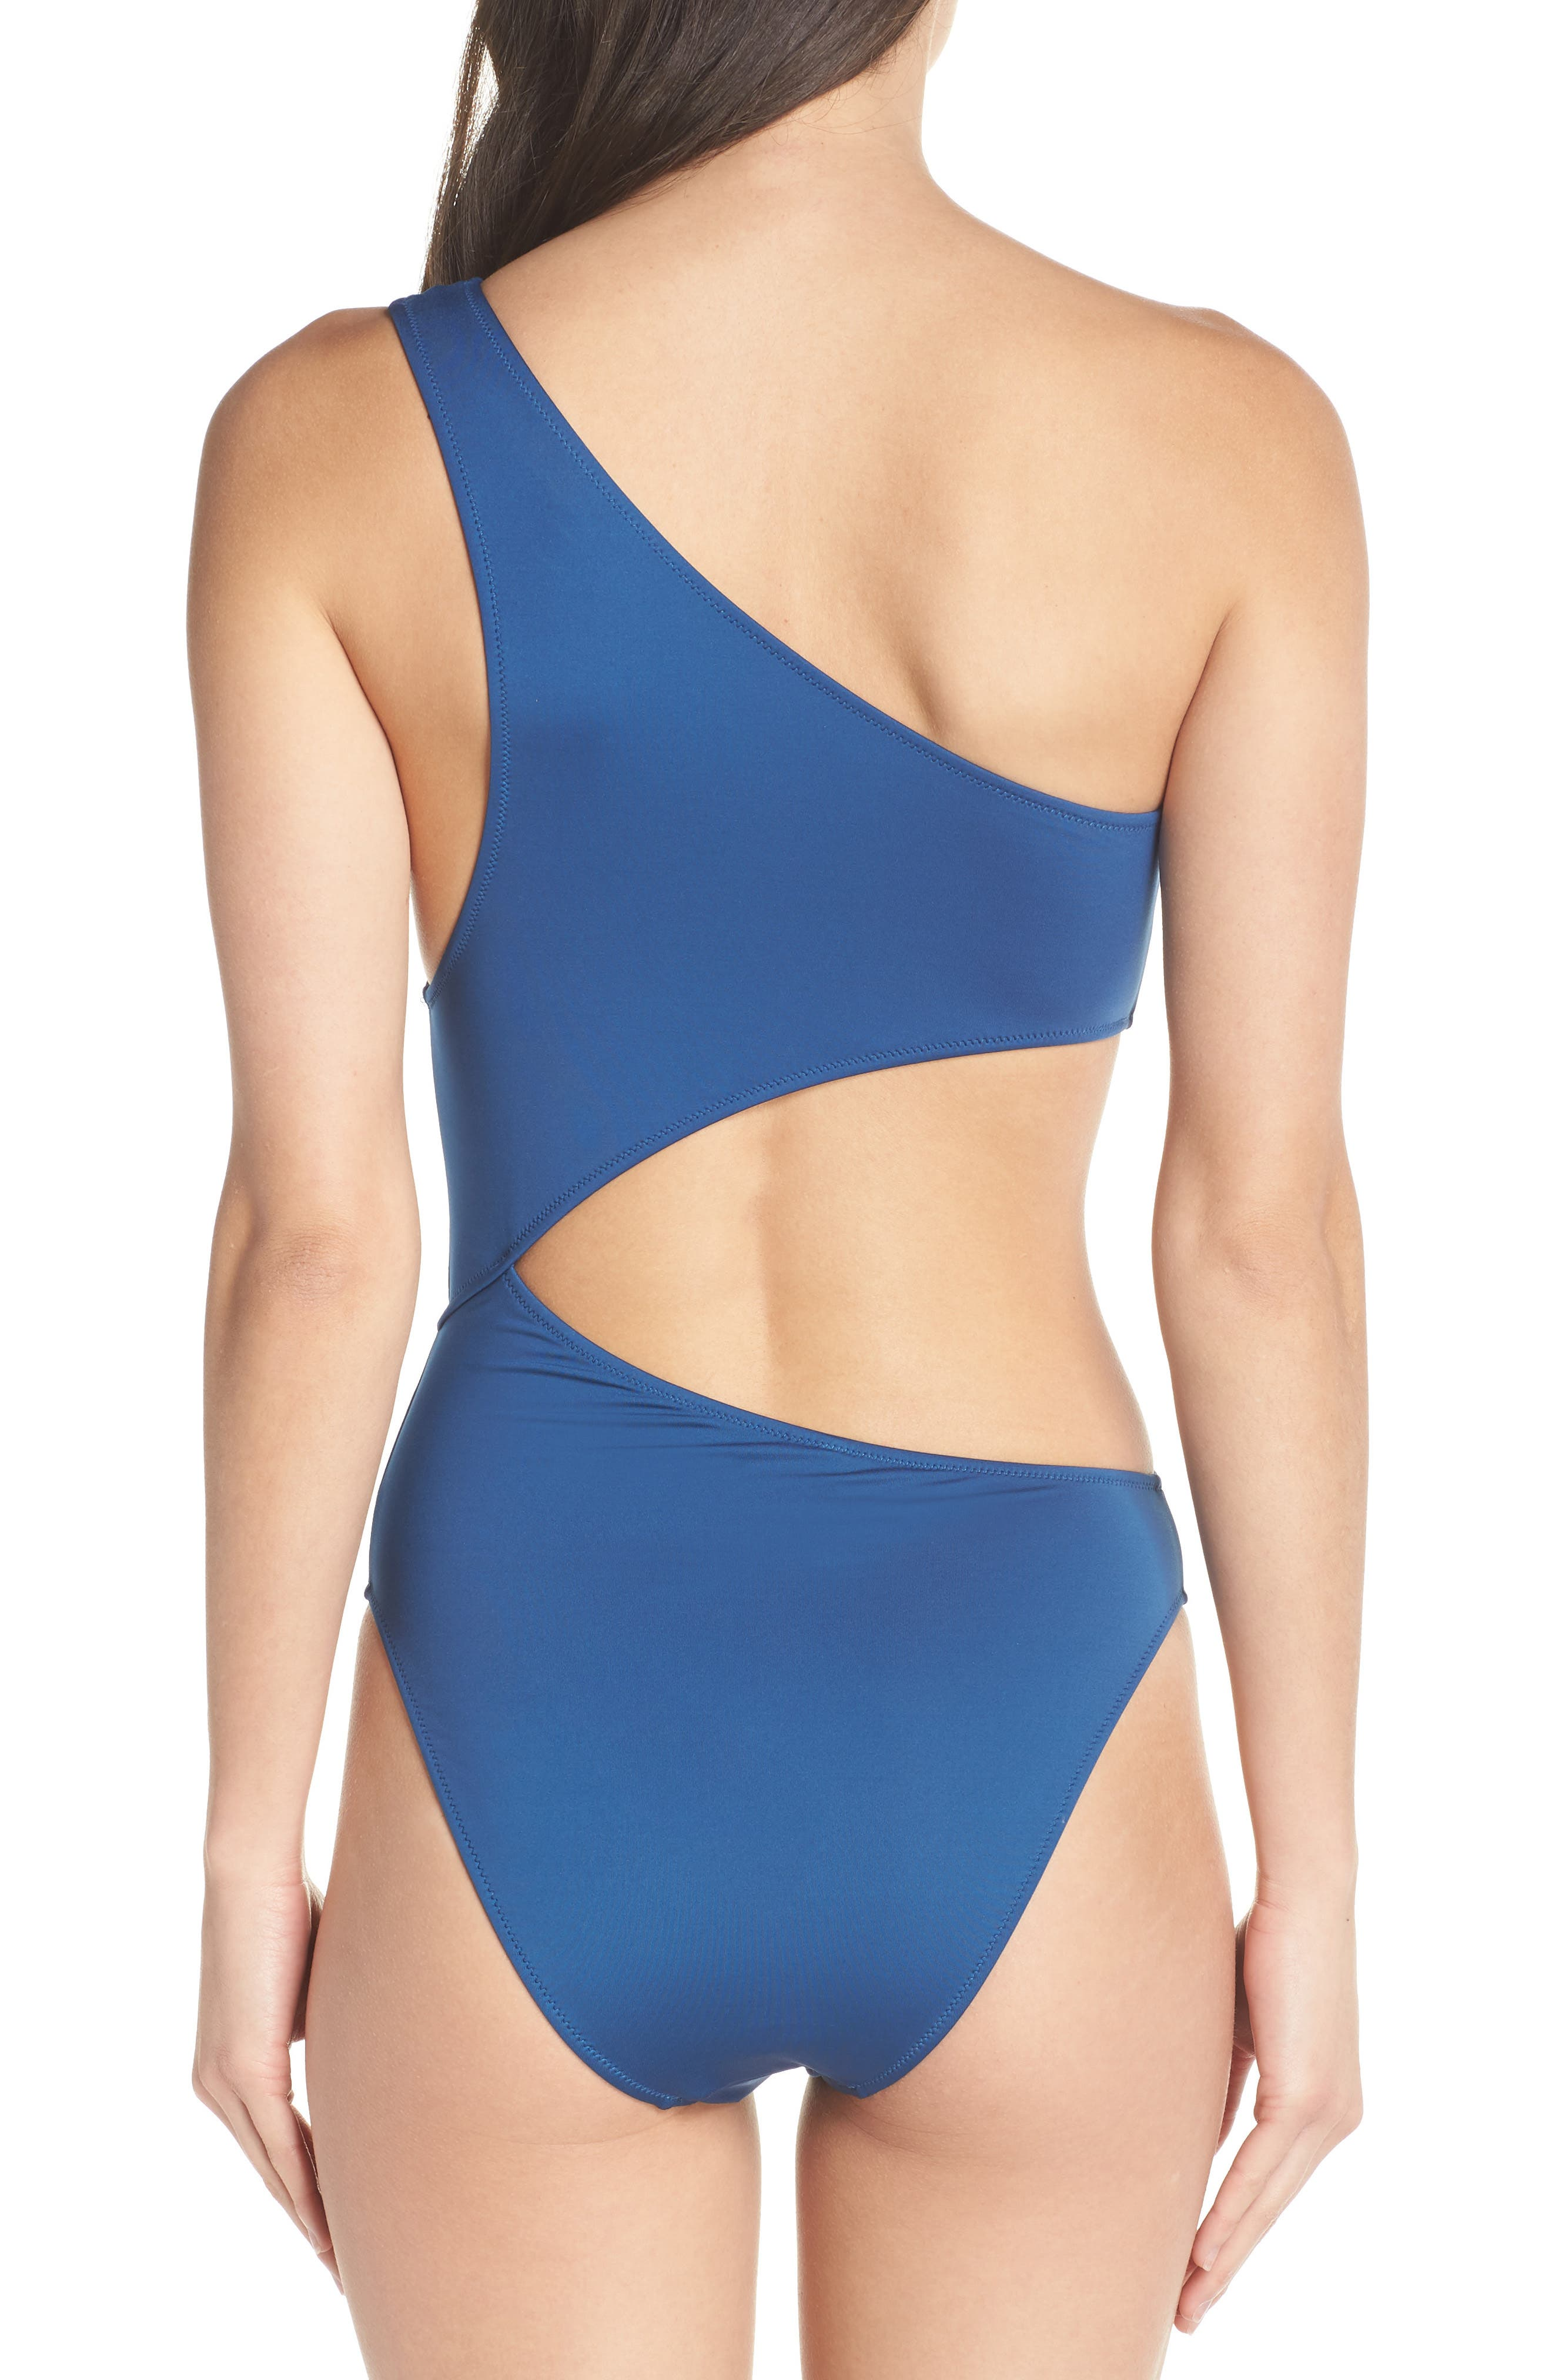 Playa Tilden One-Shoulder One-Piece Swimsuit,                             Alternate thumbnail 2, color,                             Pacific Ocean